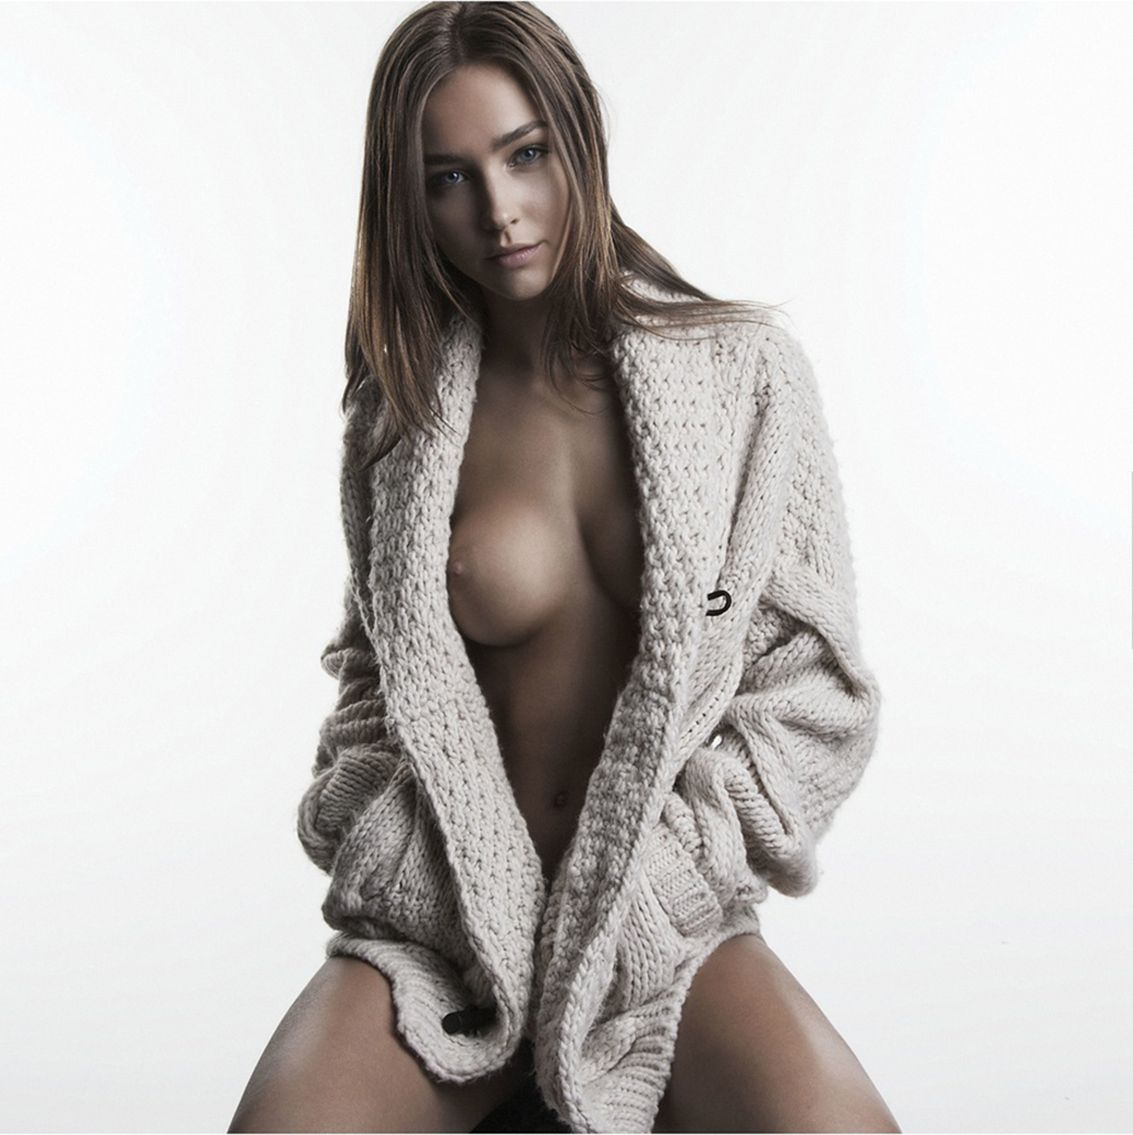 Andra Momes Nude Pussy Gallery